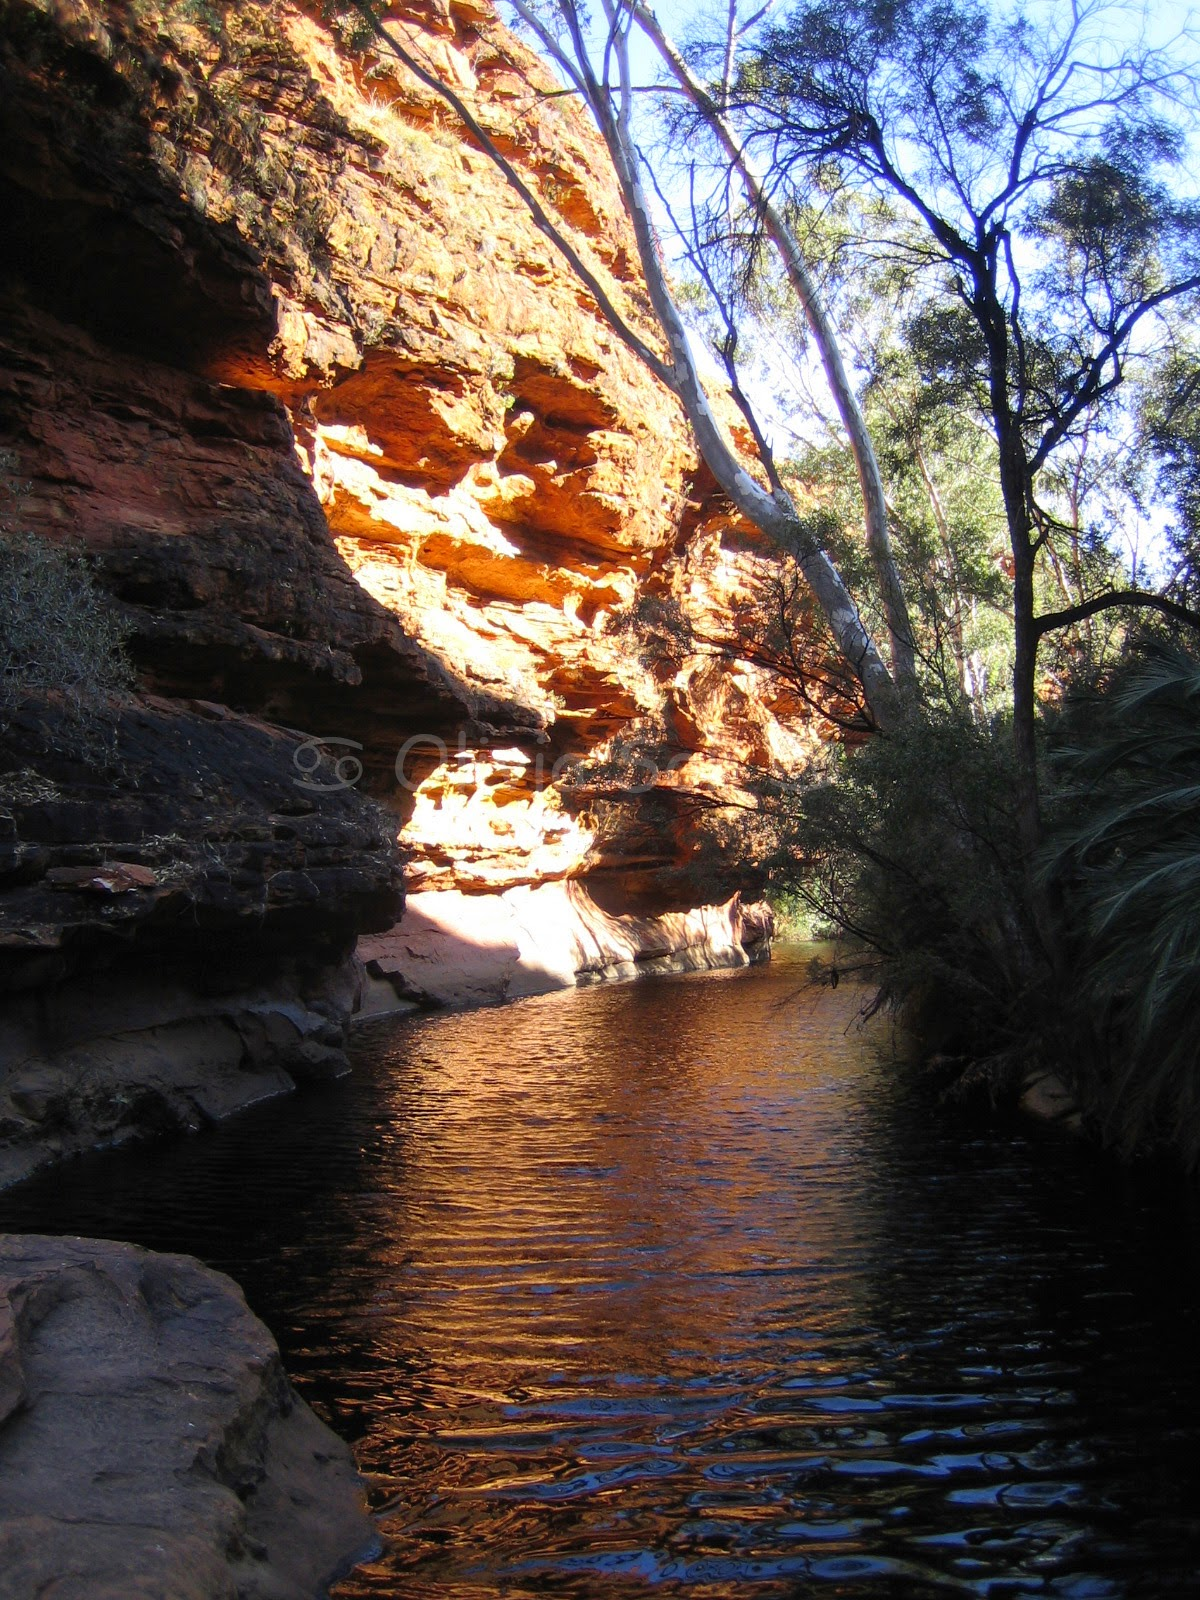 Garden of Eden, Kings Canyon, Australie